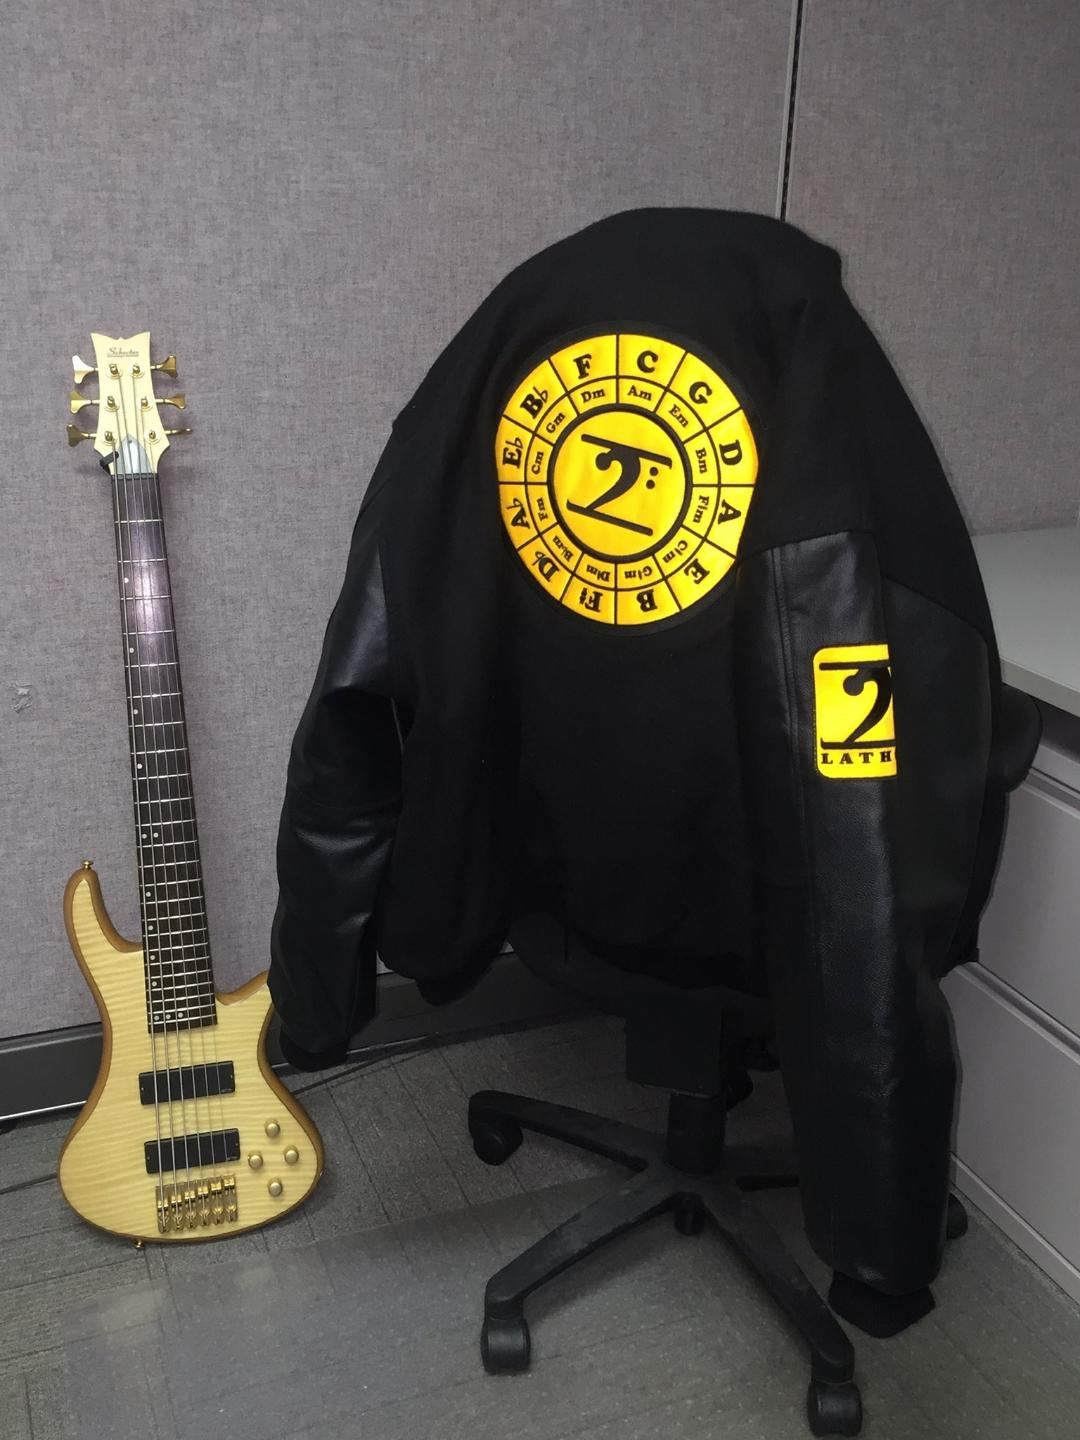 CIRCLE OF 5TH TOUR JACKET - Lathon Bass Wear